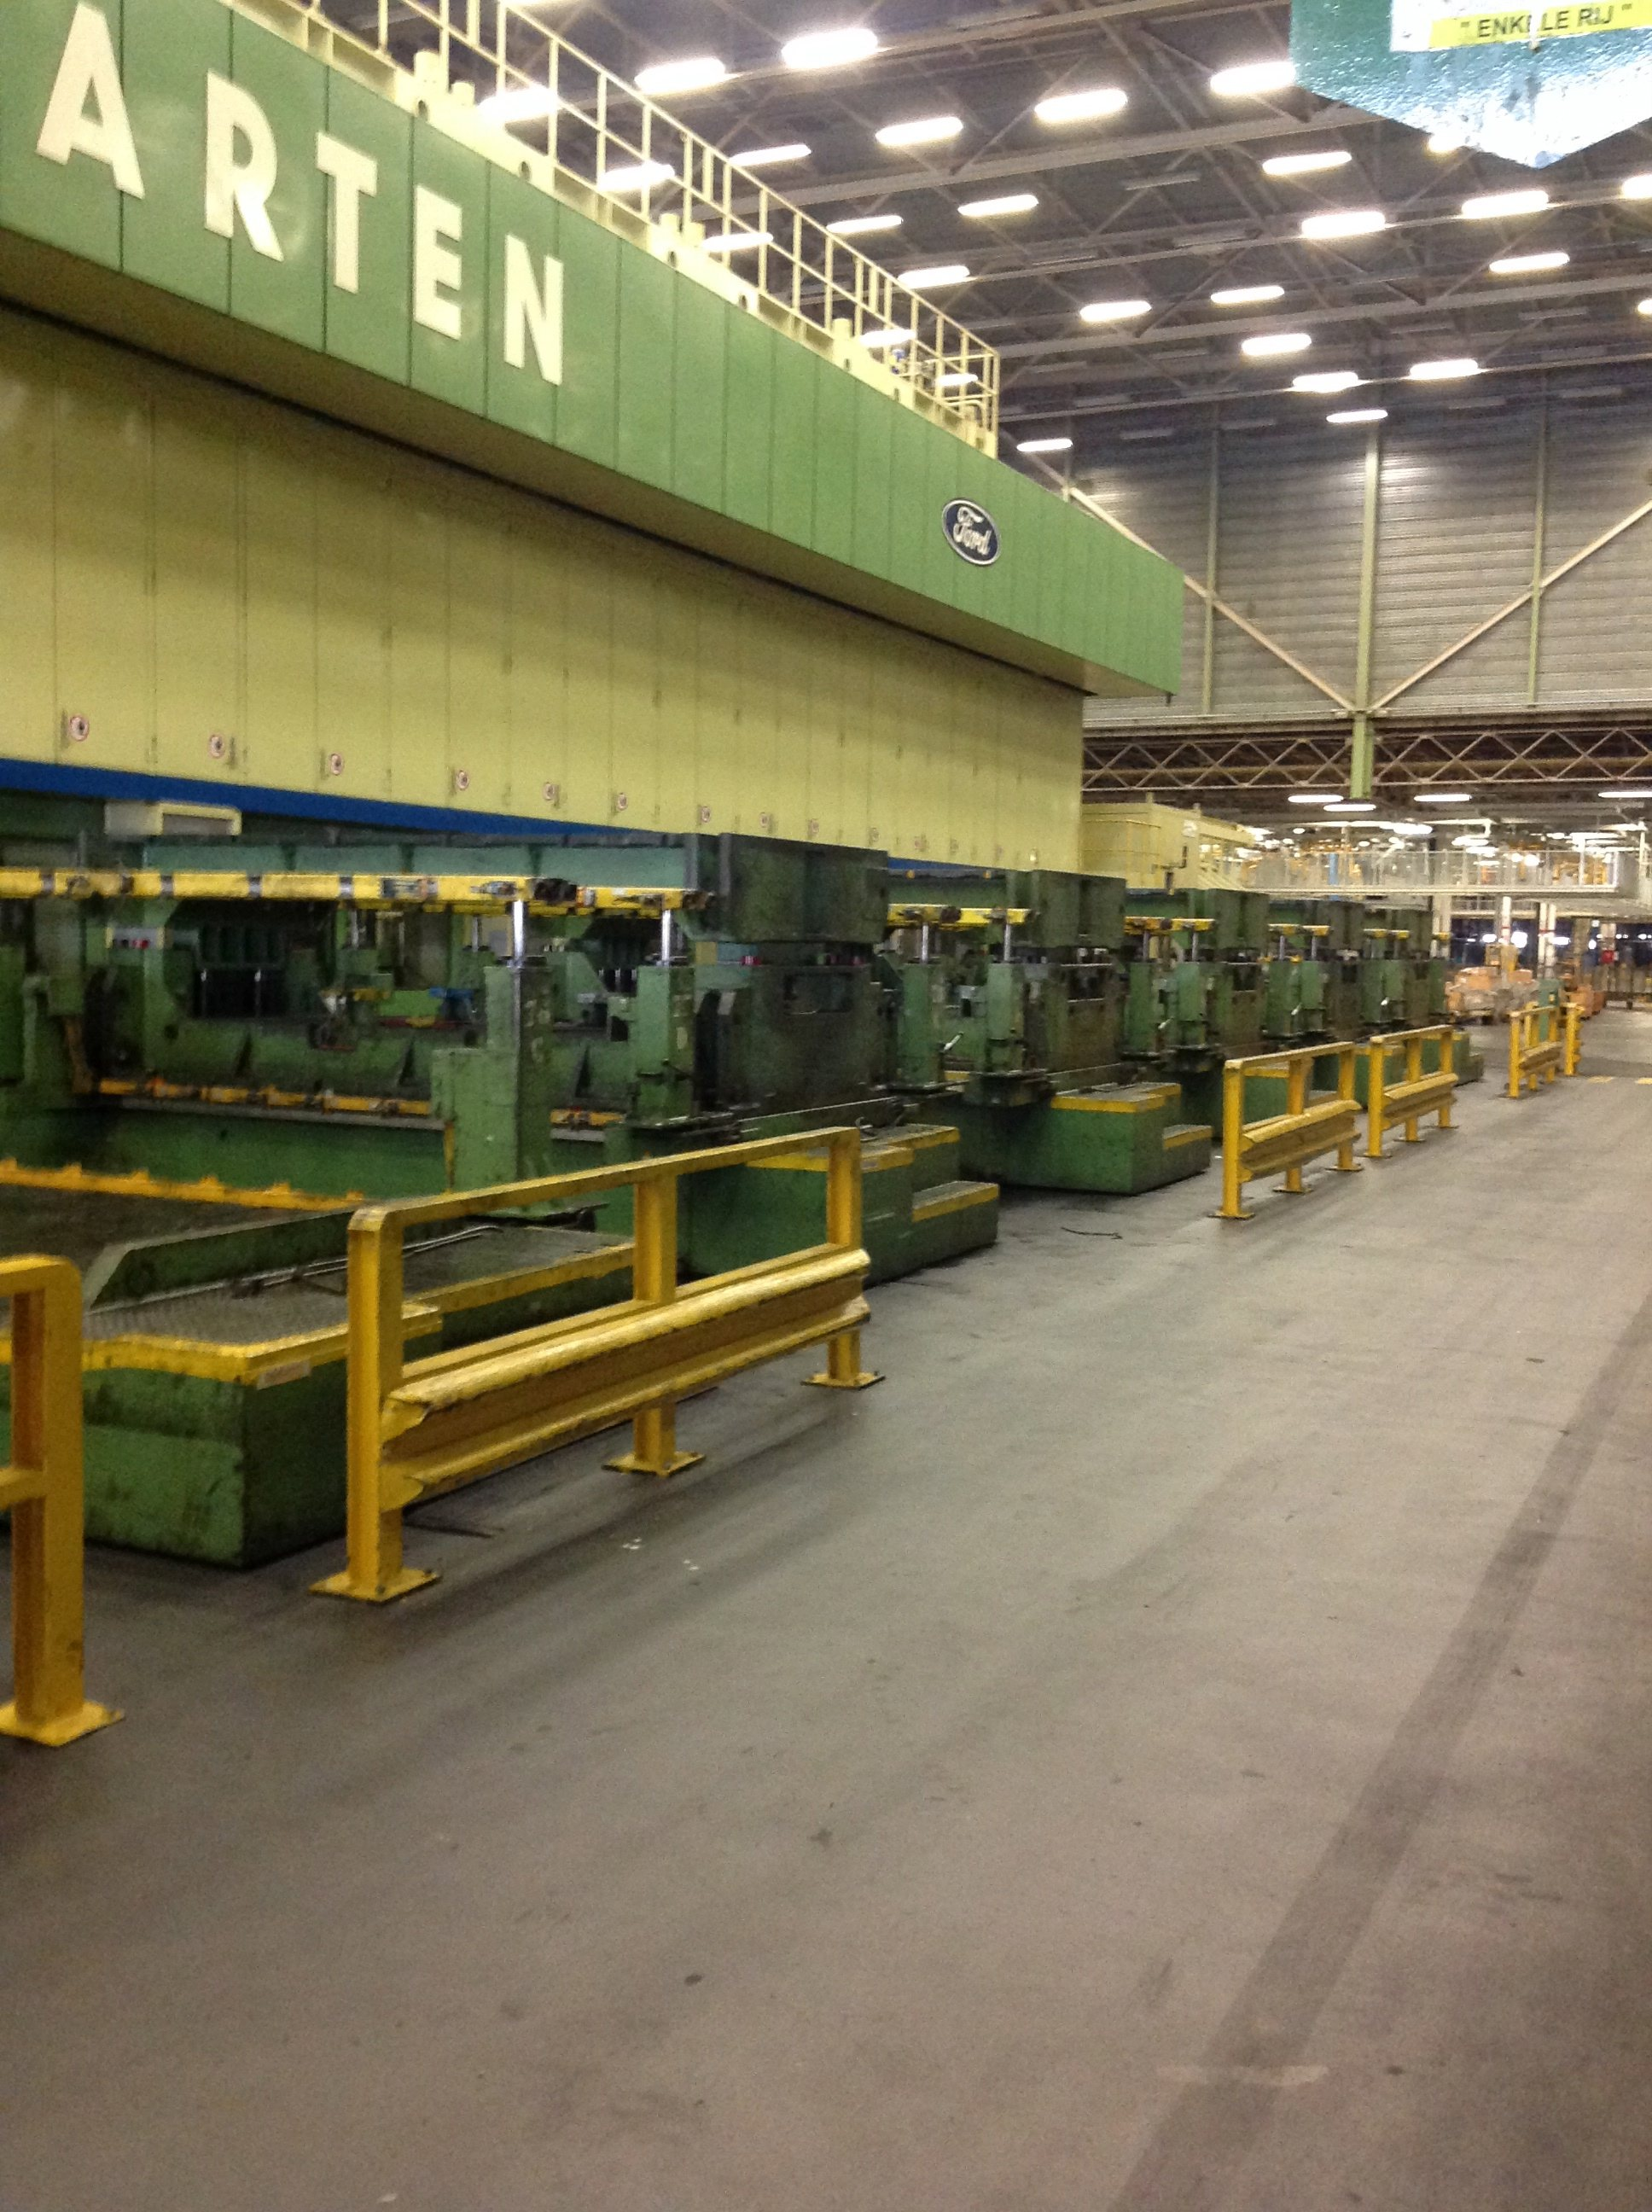 6200 TON WEINGARTEN CROSS BAR TRANSFER PRESS LINE, modernized in 2000, PLC Siemens S 5, (Line 54)